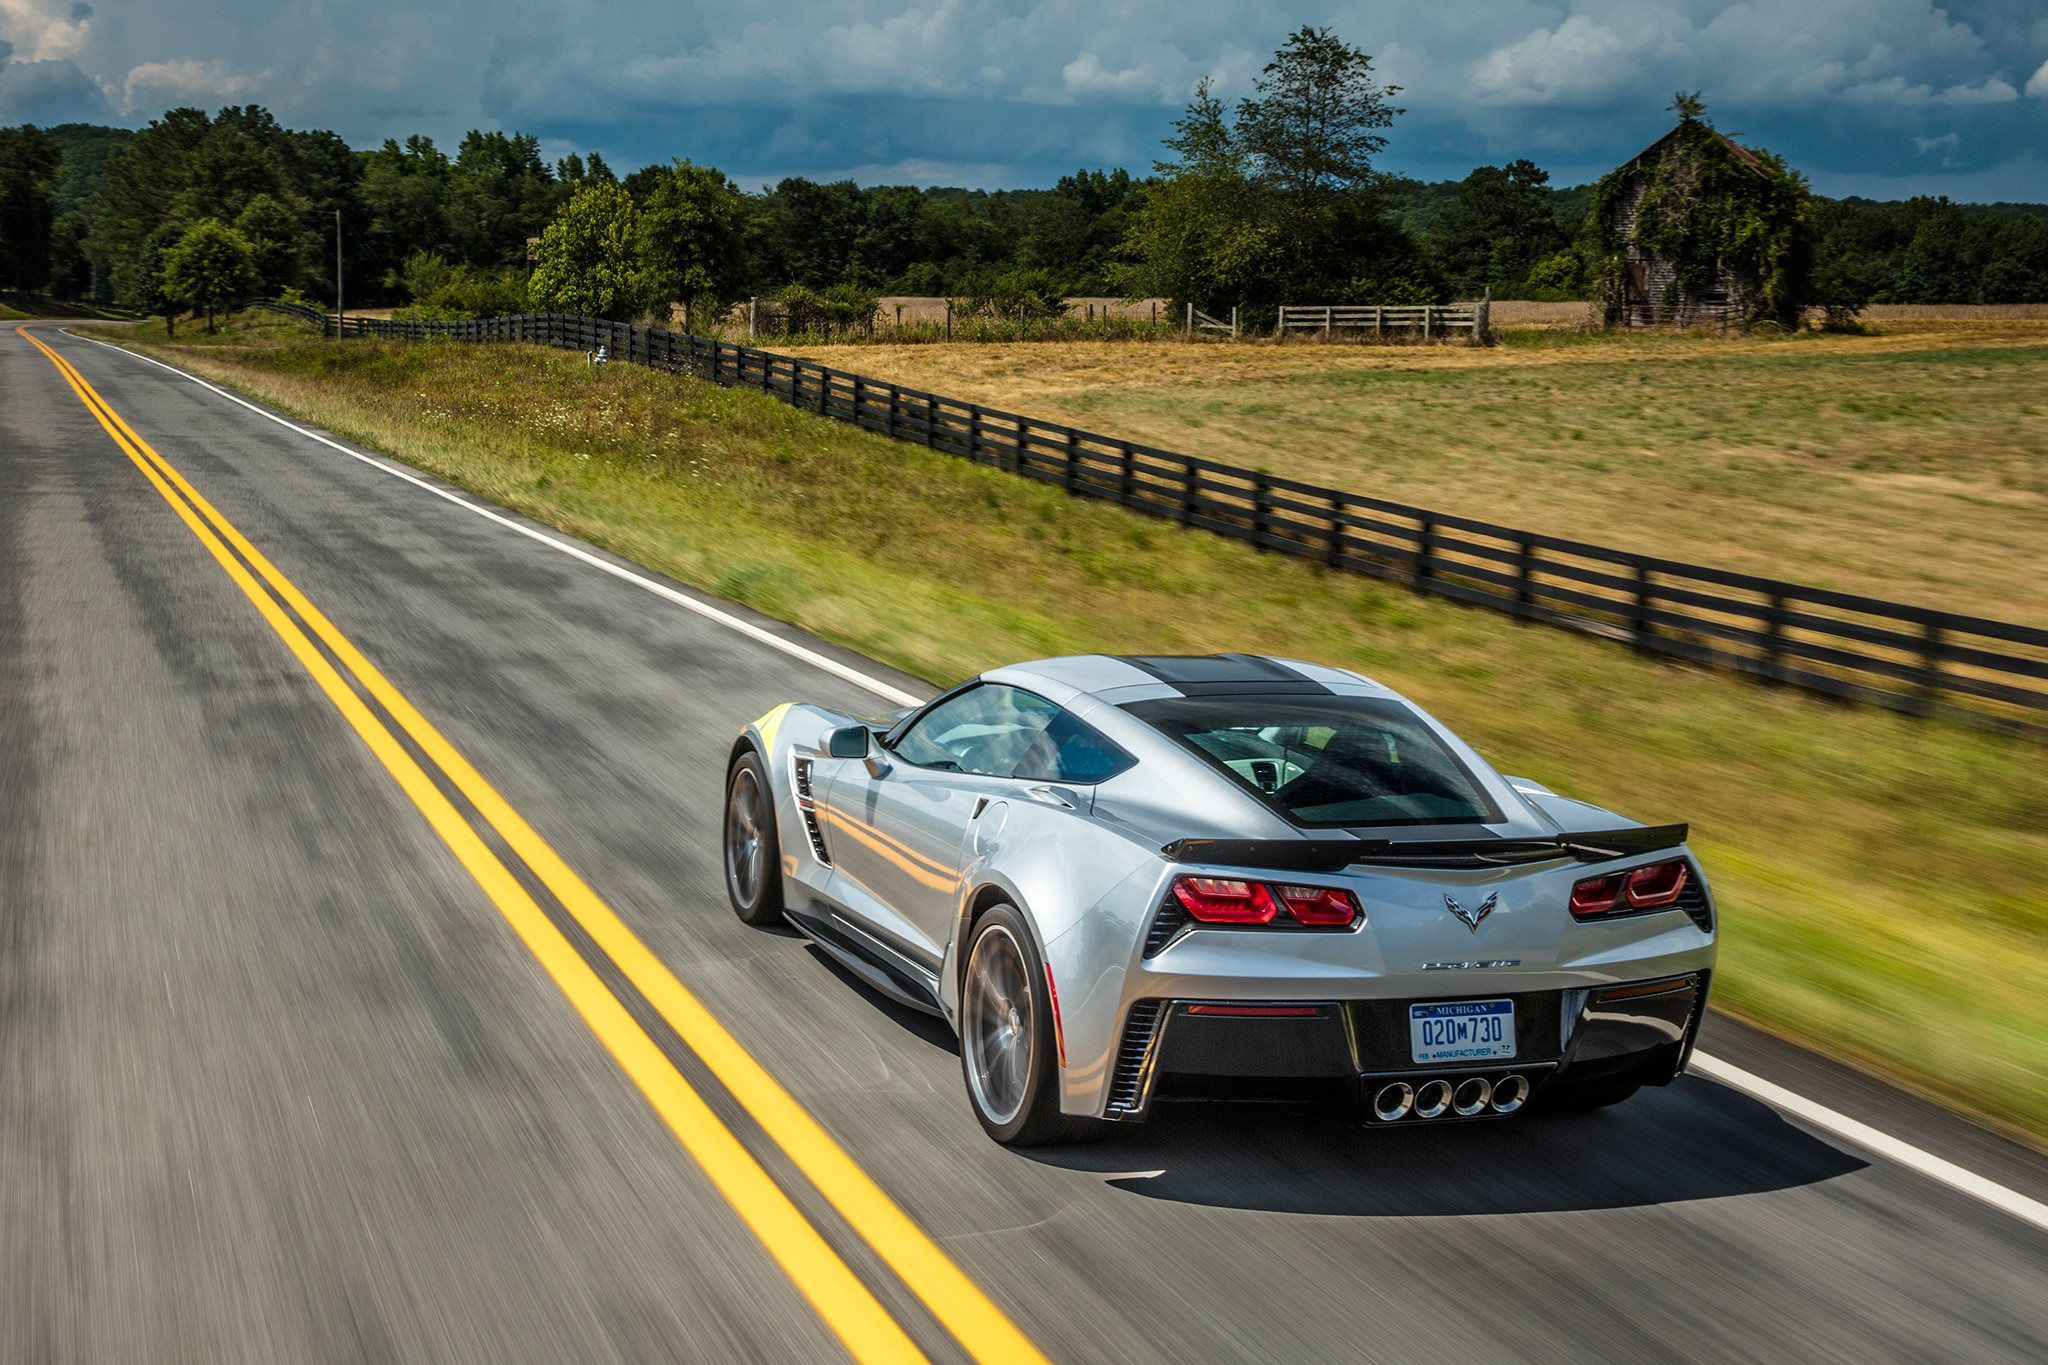 2017 Chevrolet Corvette Grand Sport Rear Three Quarter In Motion 04